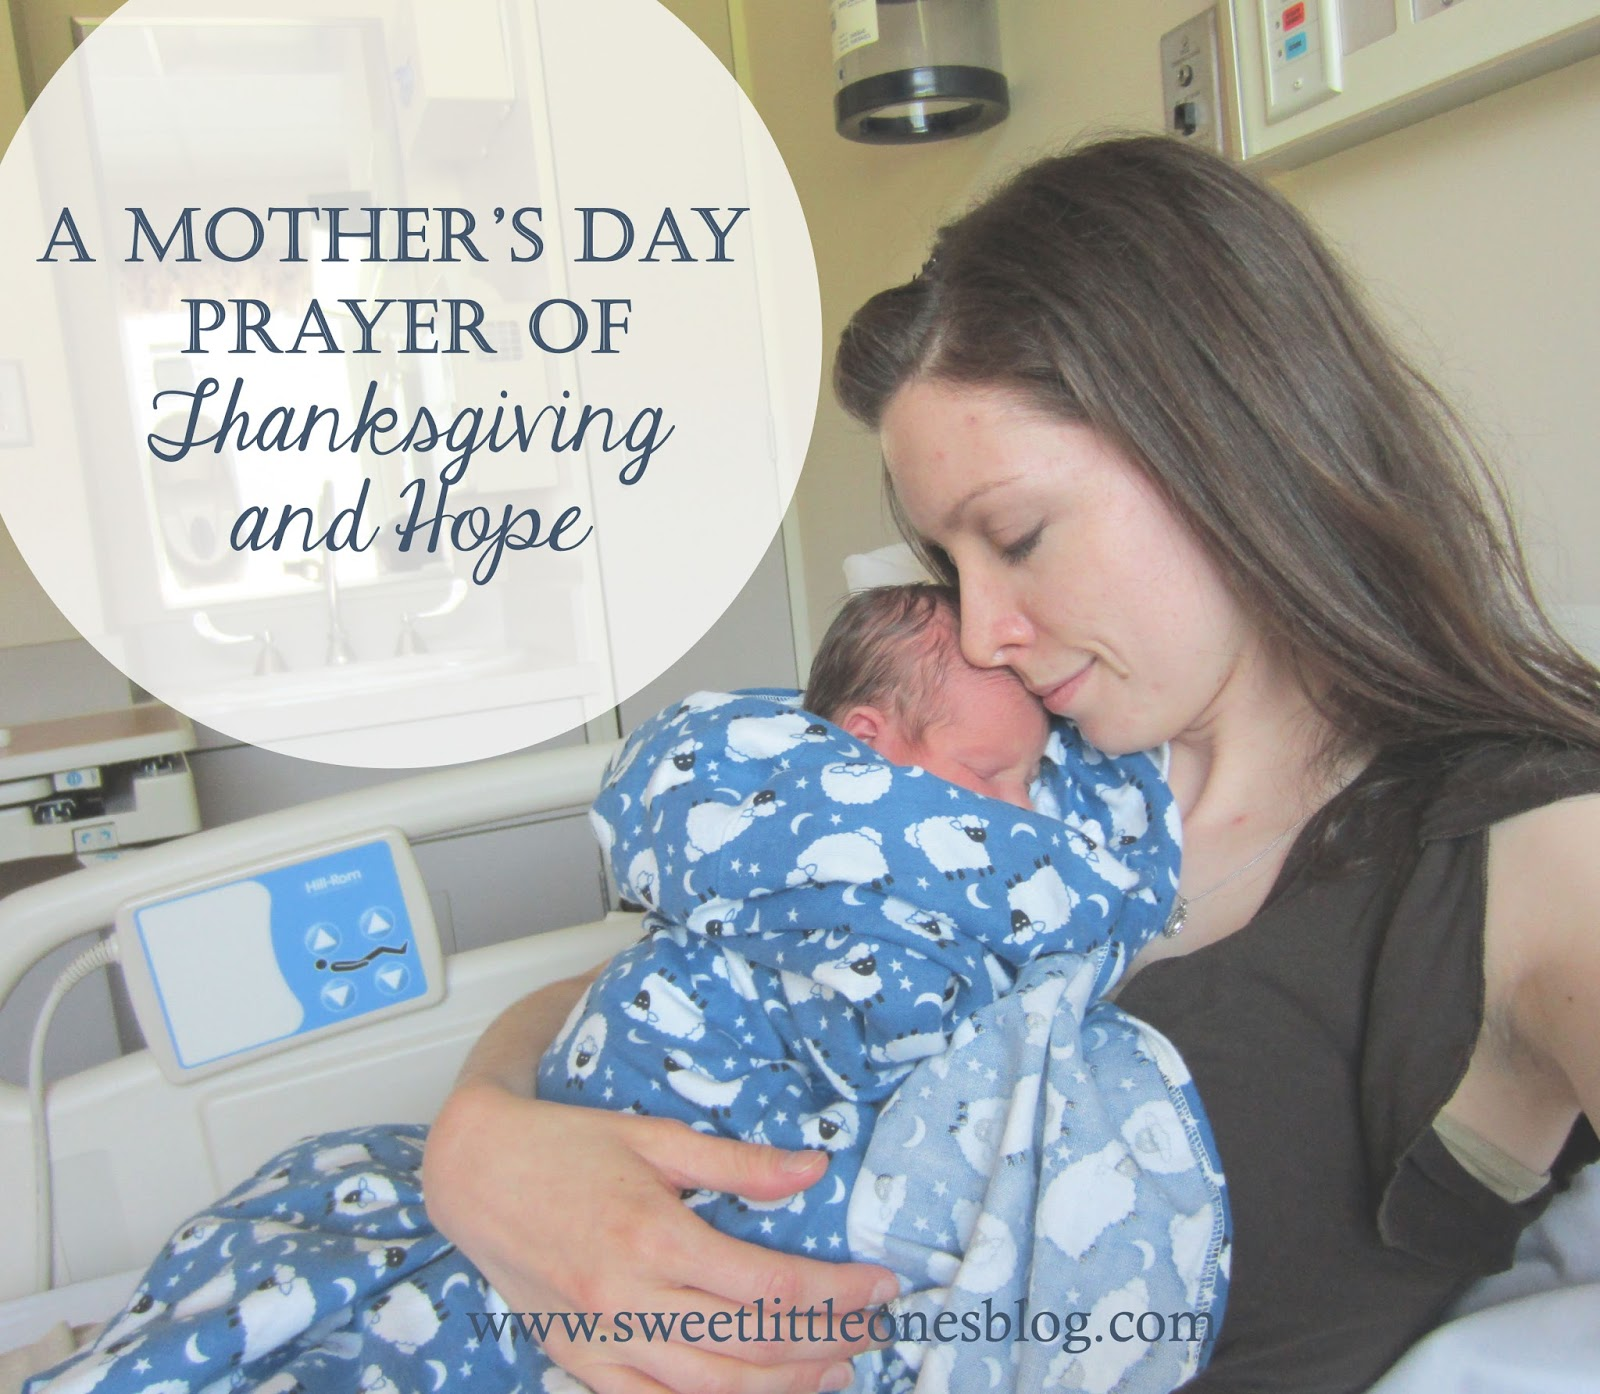 A Mother's Day Prayer of Thanksgiving and Hope for Infertility, Miscarriage, Lost Child or Mother, Birthmothers, and All Mothers - www.sweetlittleonesblog.com - @sweetlittle1s